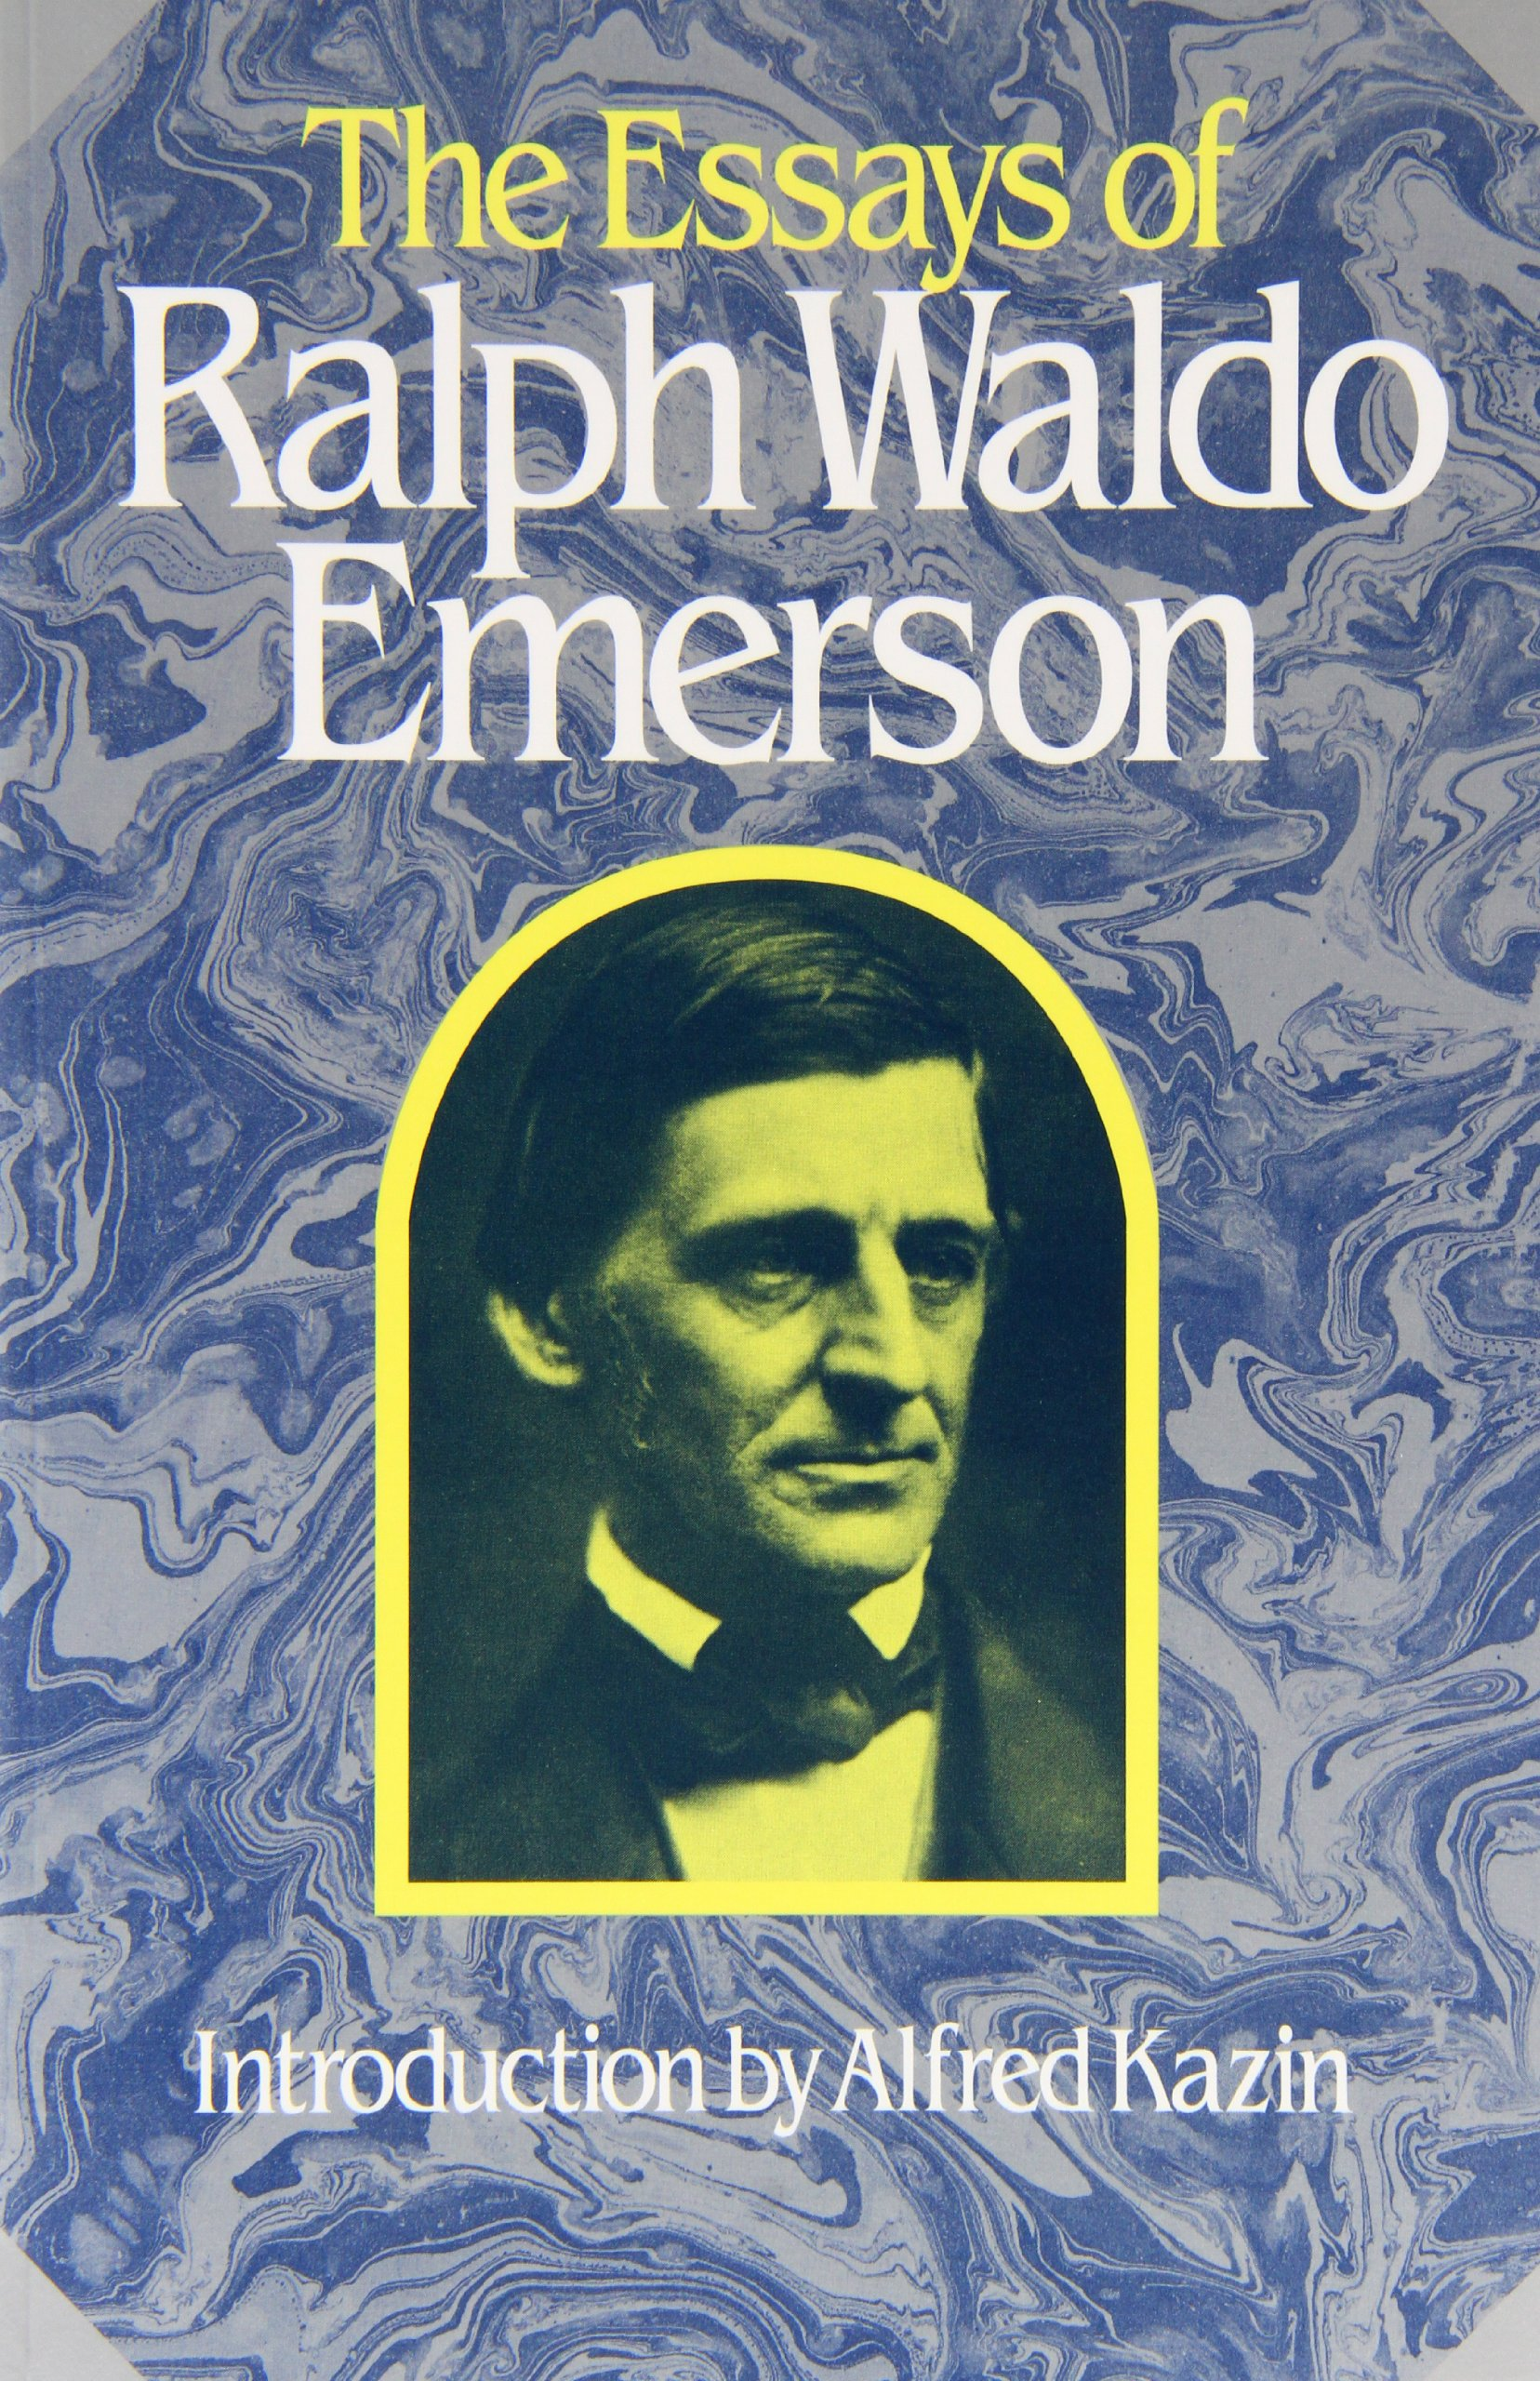 ralph waldo emerson nature essay analysis